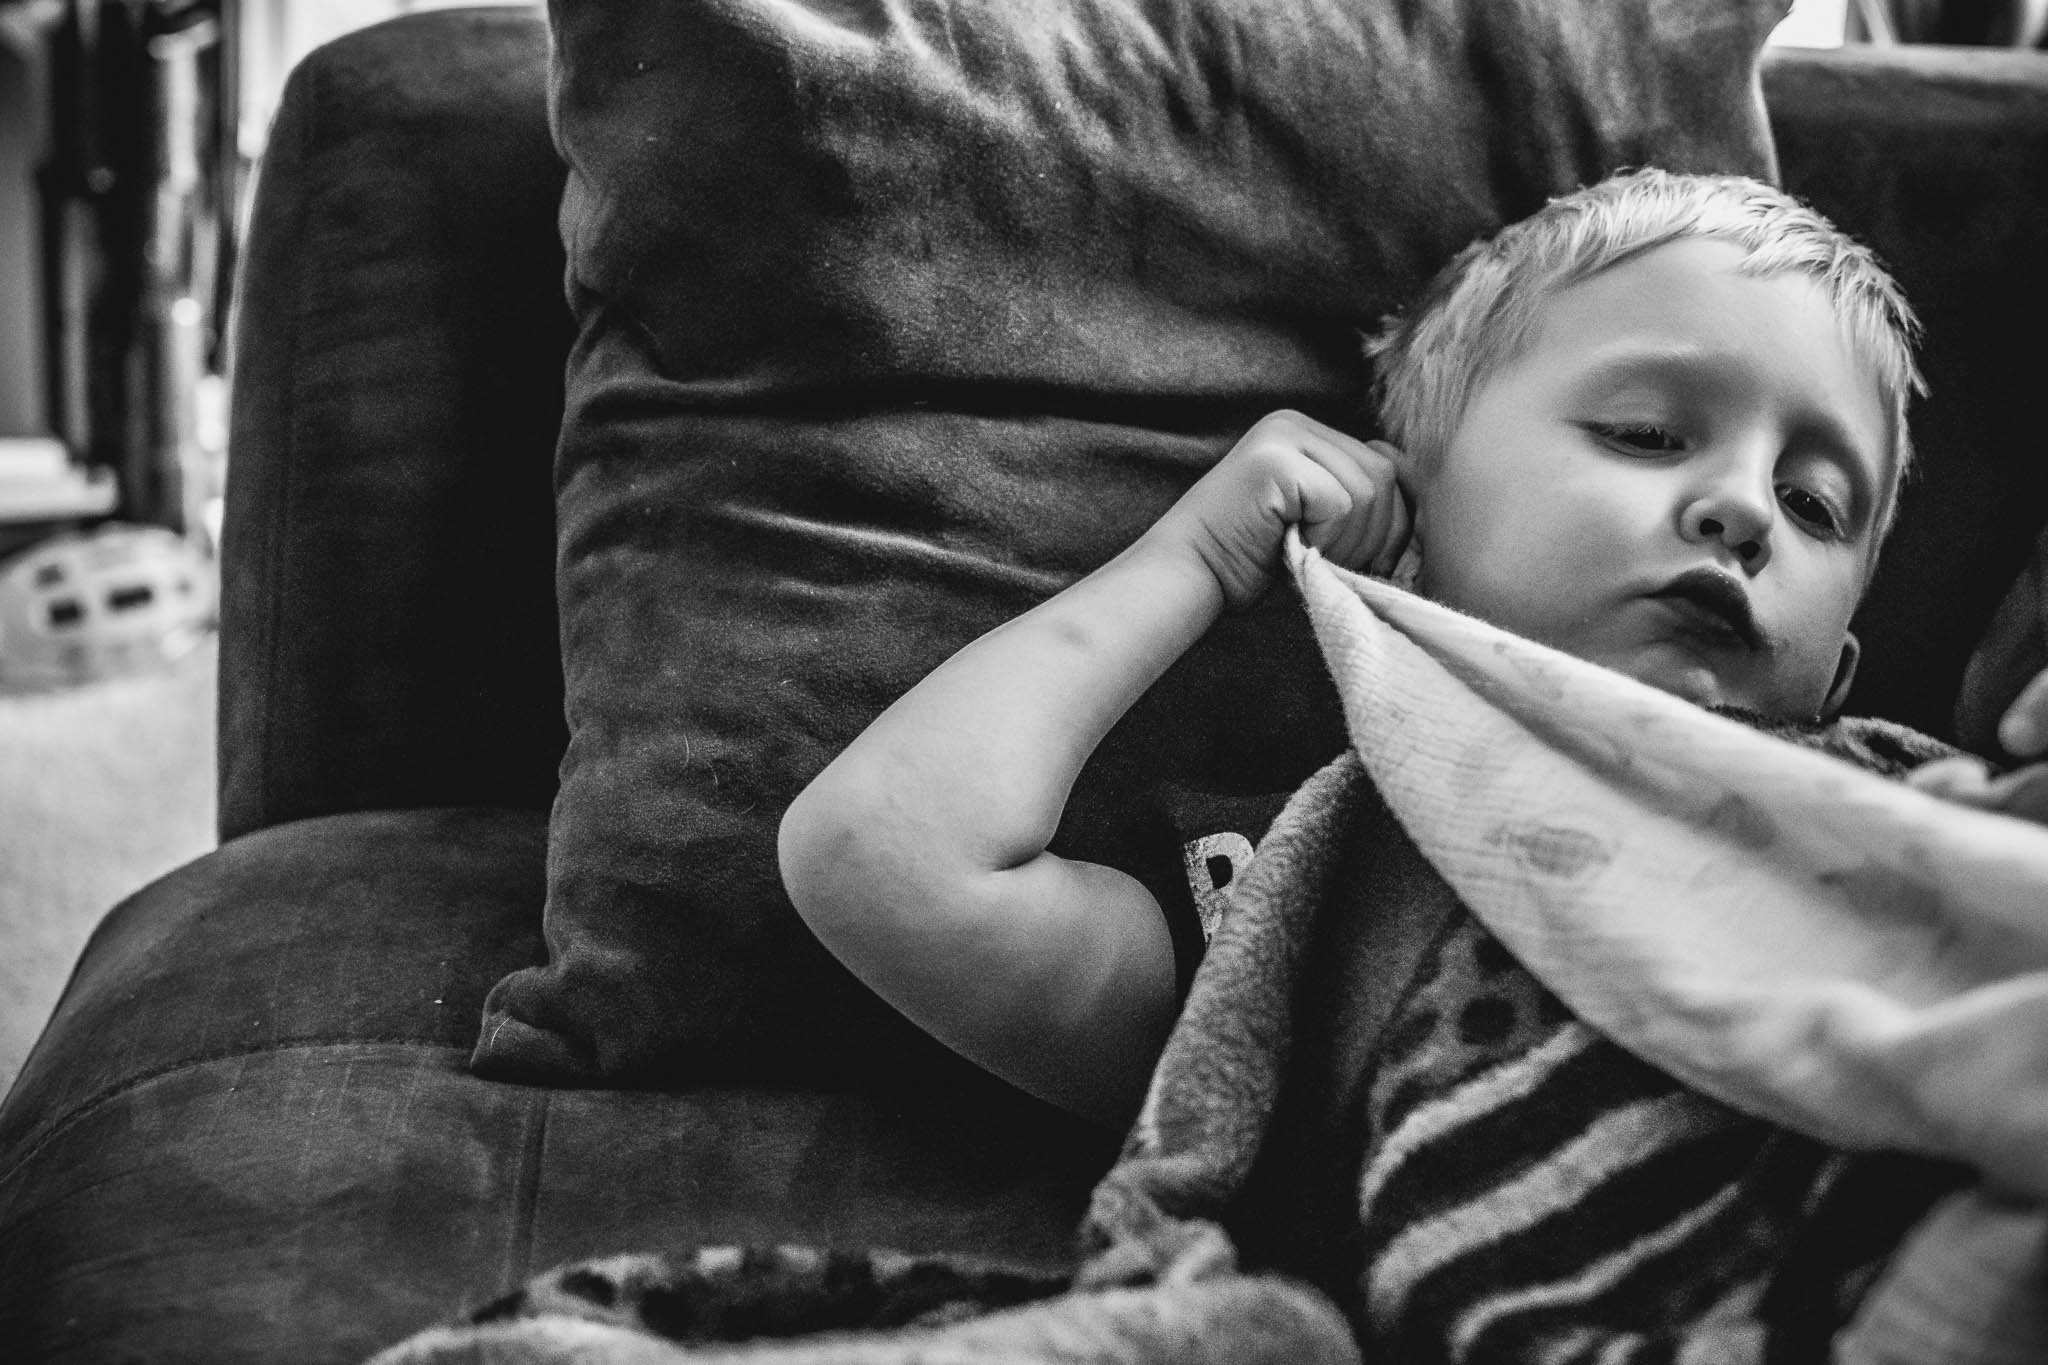 Totally not the perfect image. But the details here are what matter to me. He was tired and he took his blankie (one of 5, as long as they are muslin fabric he doesn't care) and rubs it in and along his ear. It's his tell that he is exhausted. Since he could touch his ear that was his thing.